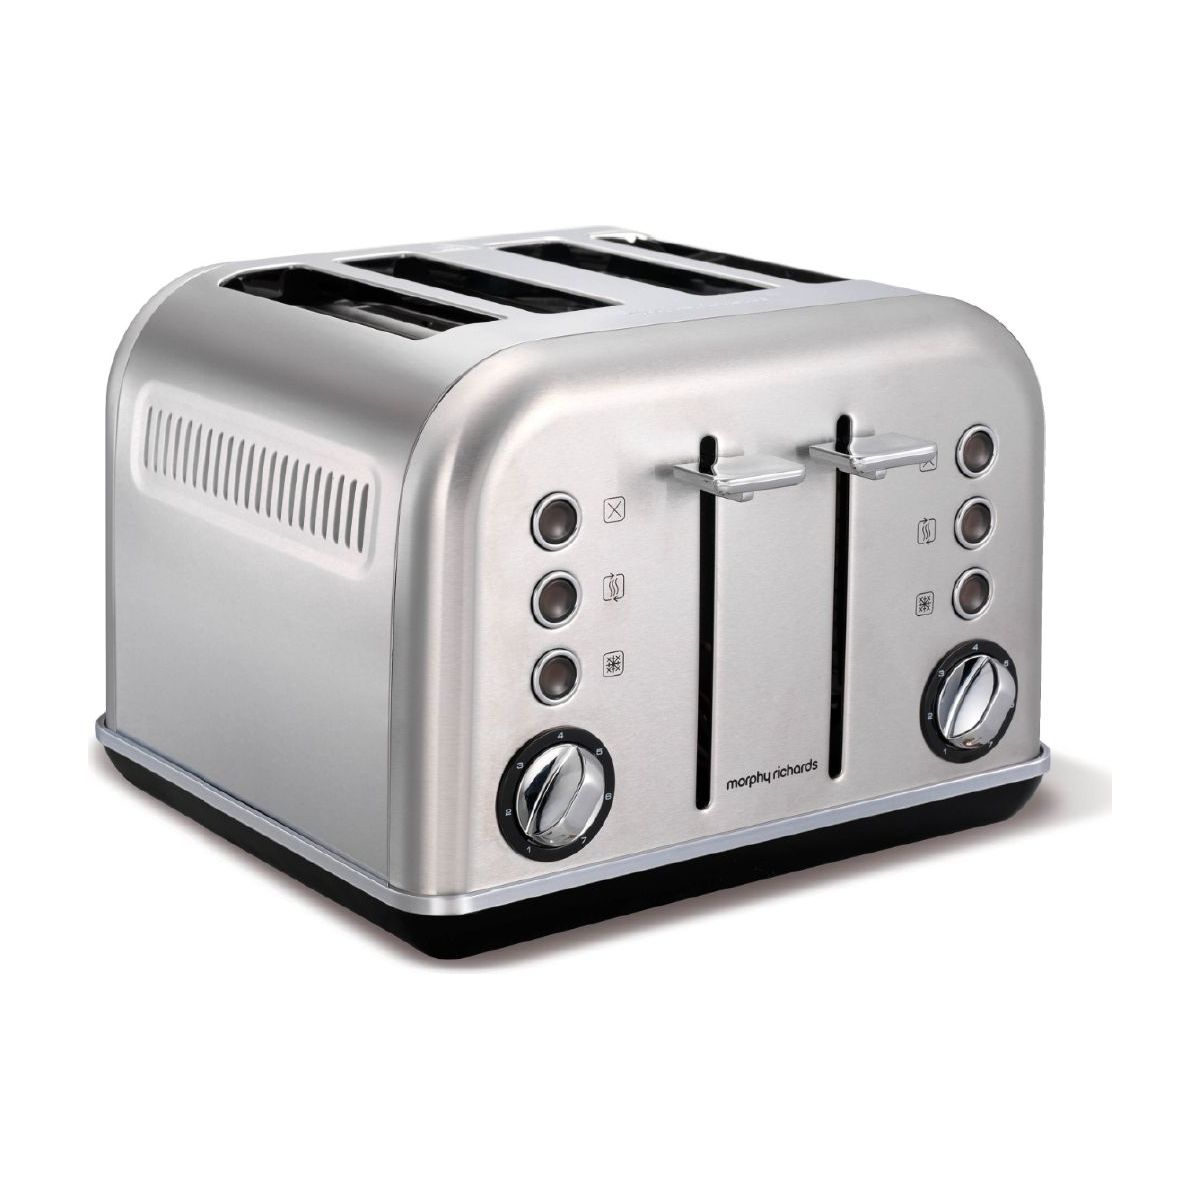 Grille-pain MORPHY RICHARDS Accents Refresh 4 tranches Inox